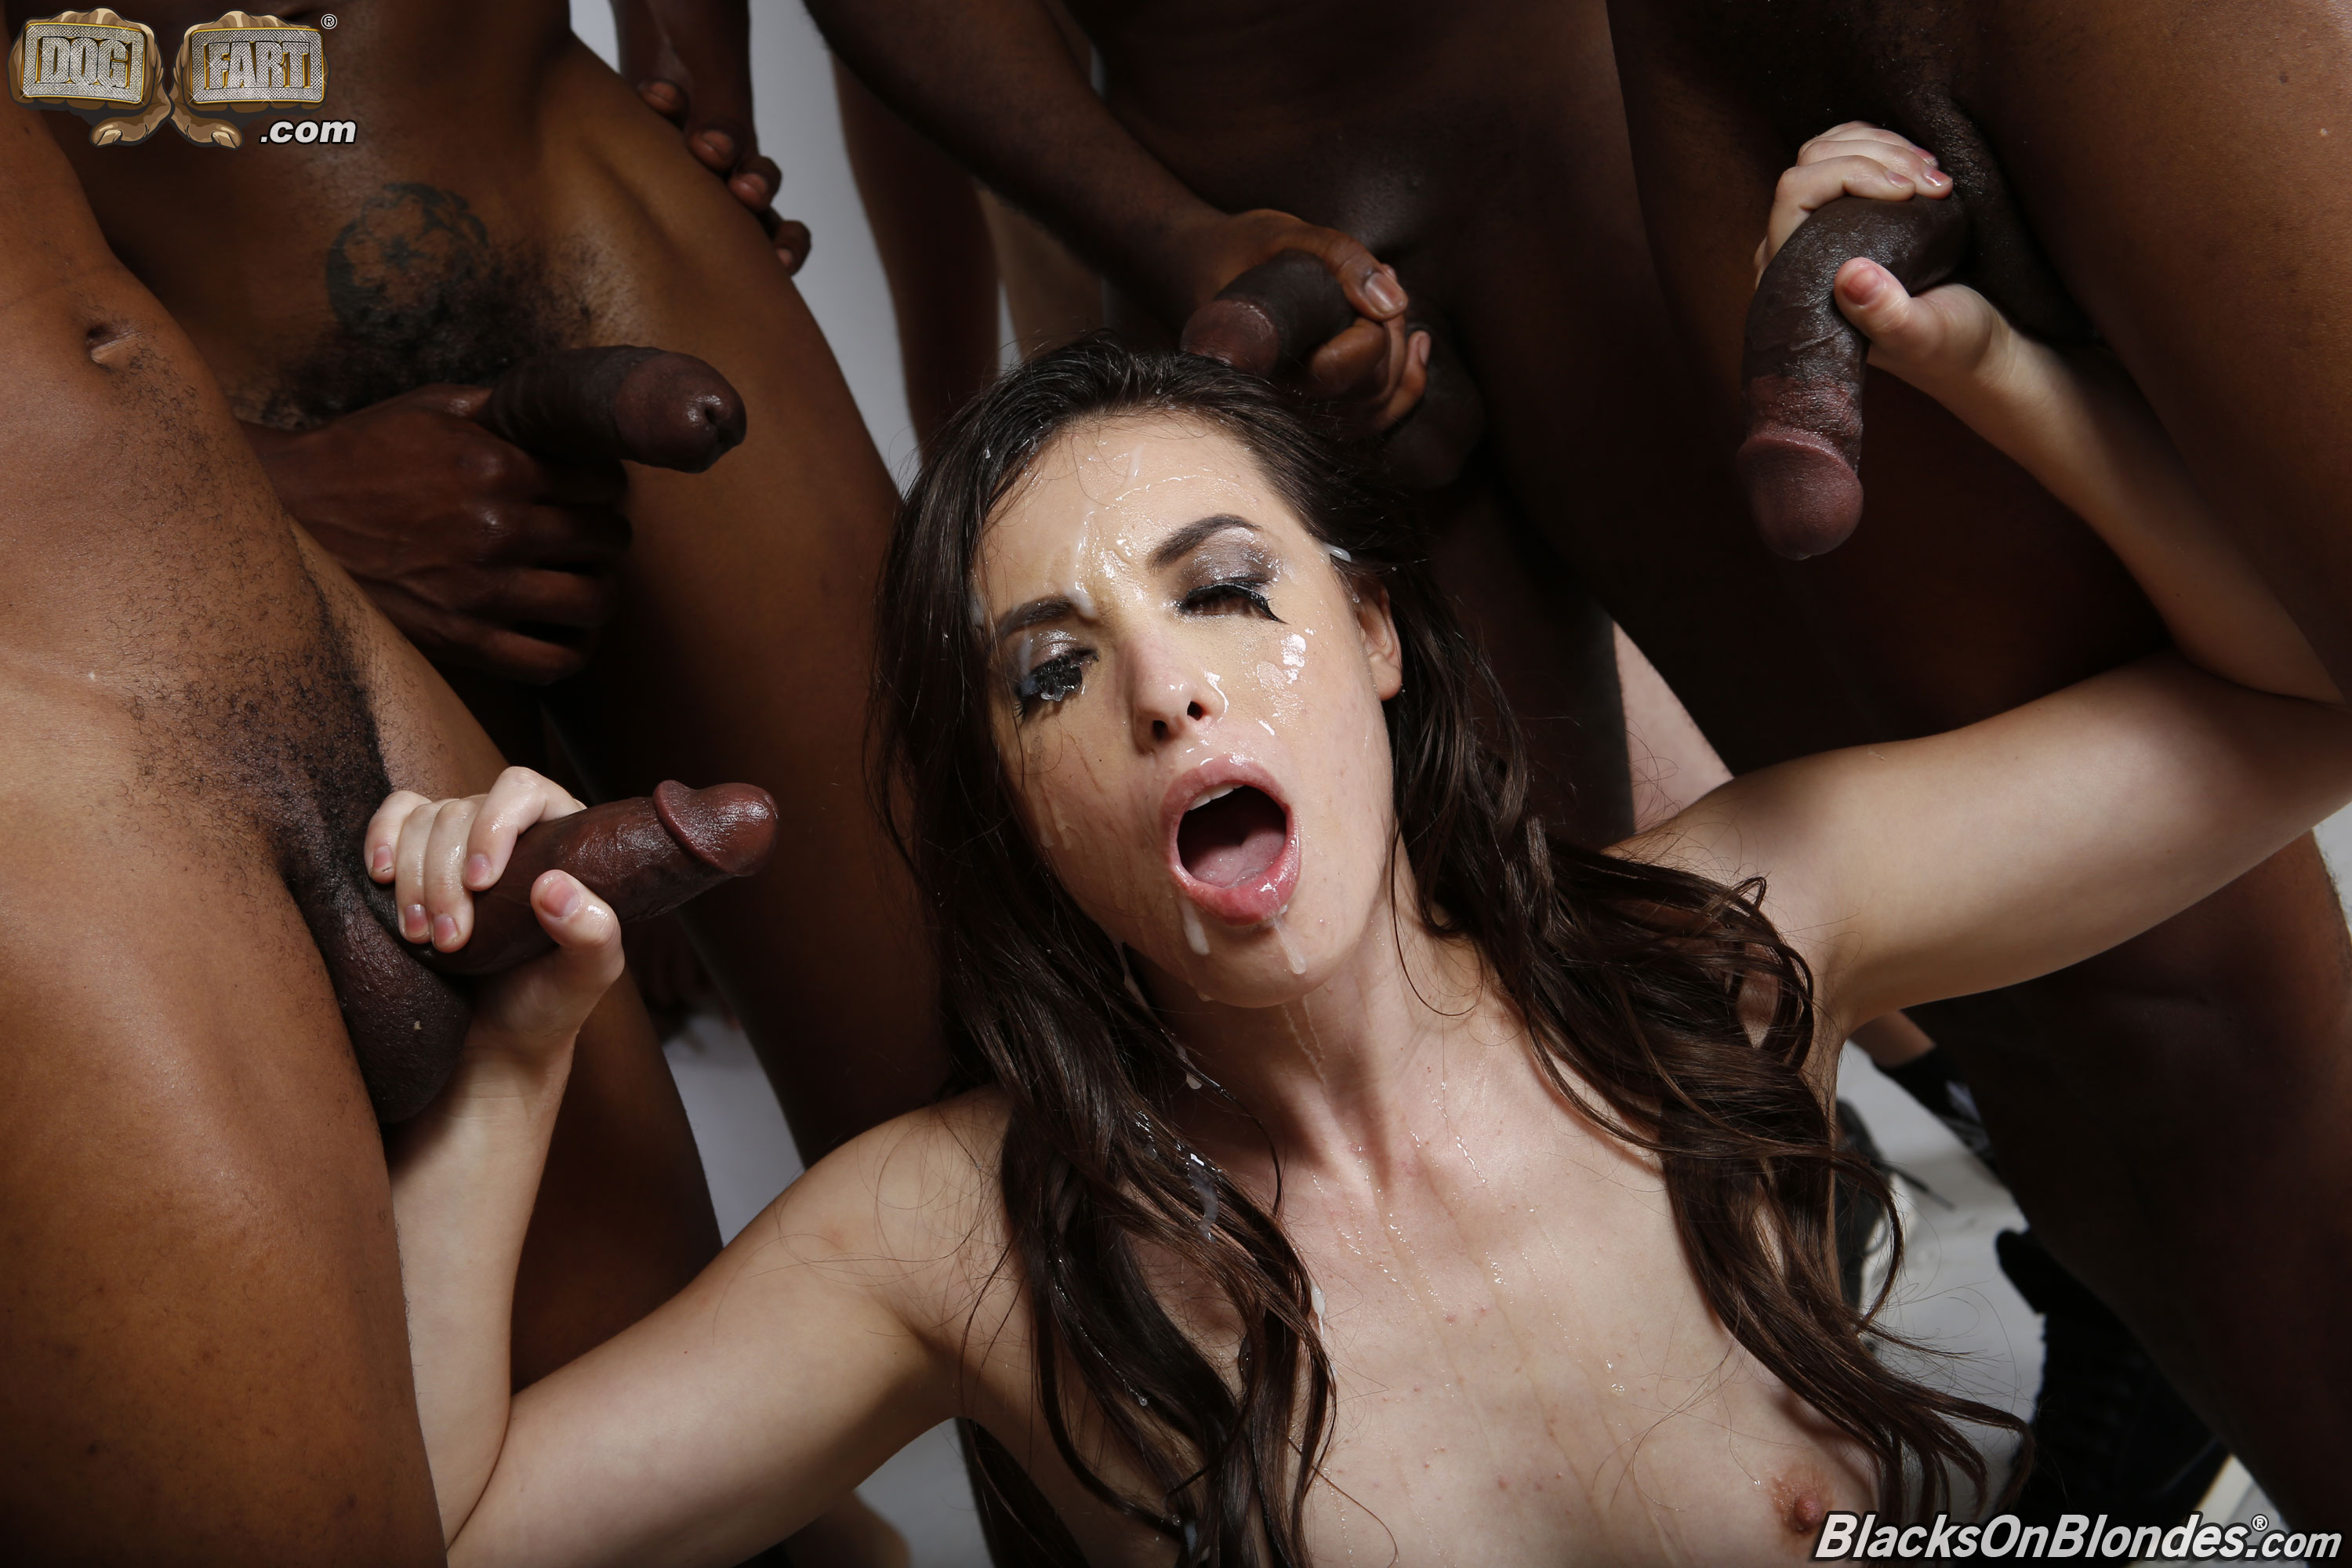 Lover her best interracial fuck movies nice sex